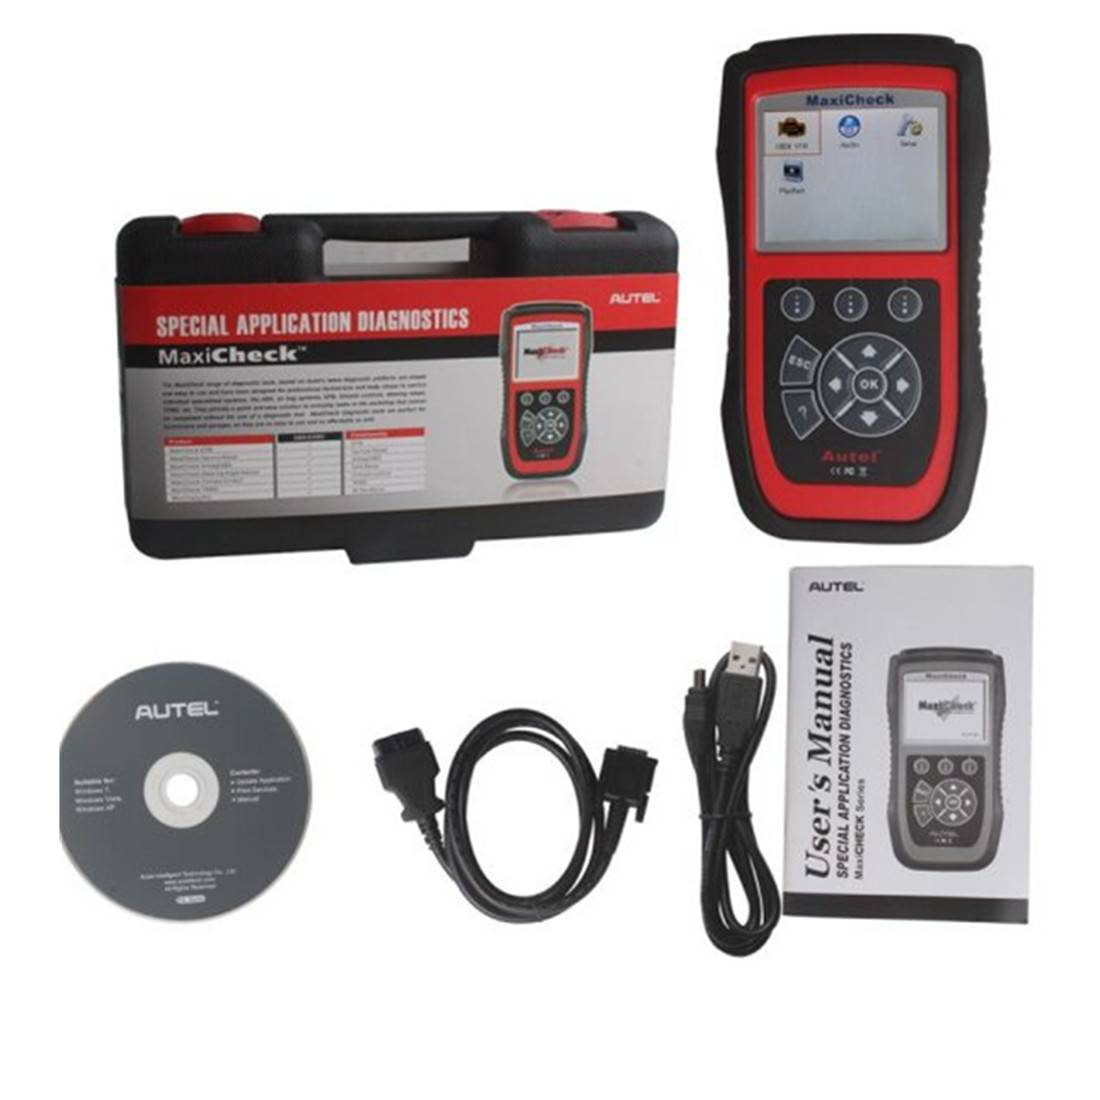 Autel MaxiCheck Airbag/ABS SRS Light Service Reset Tool Original Special Application Diagnostics